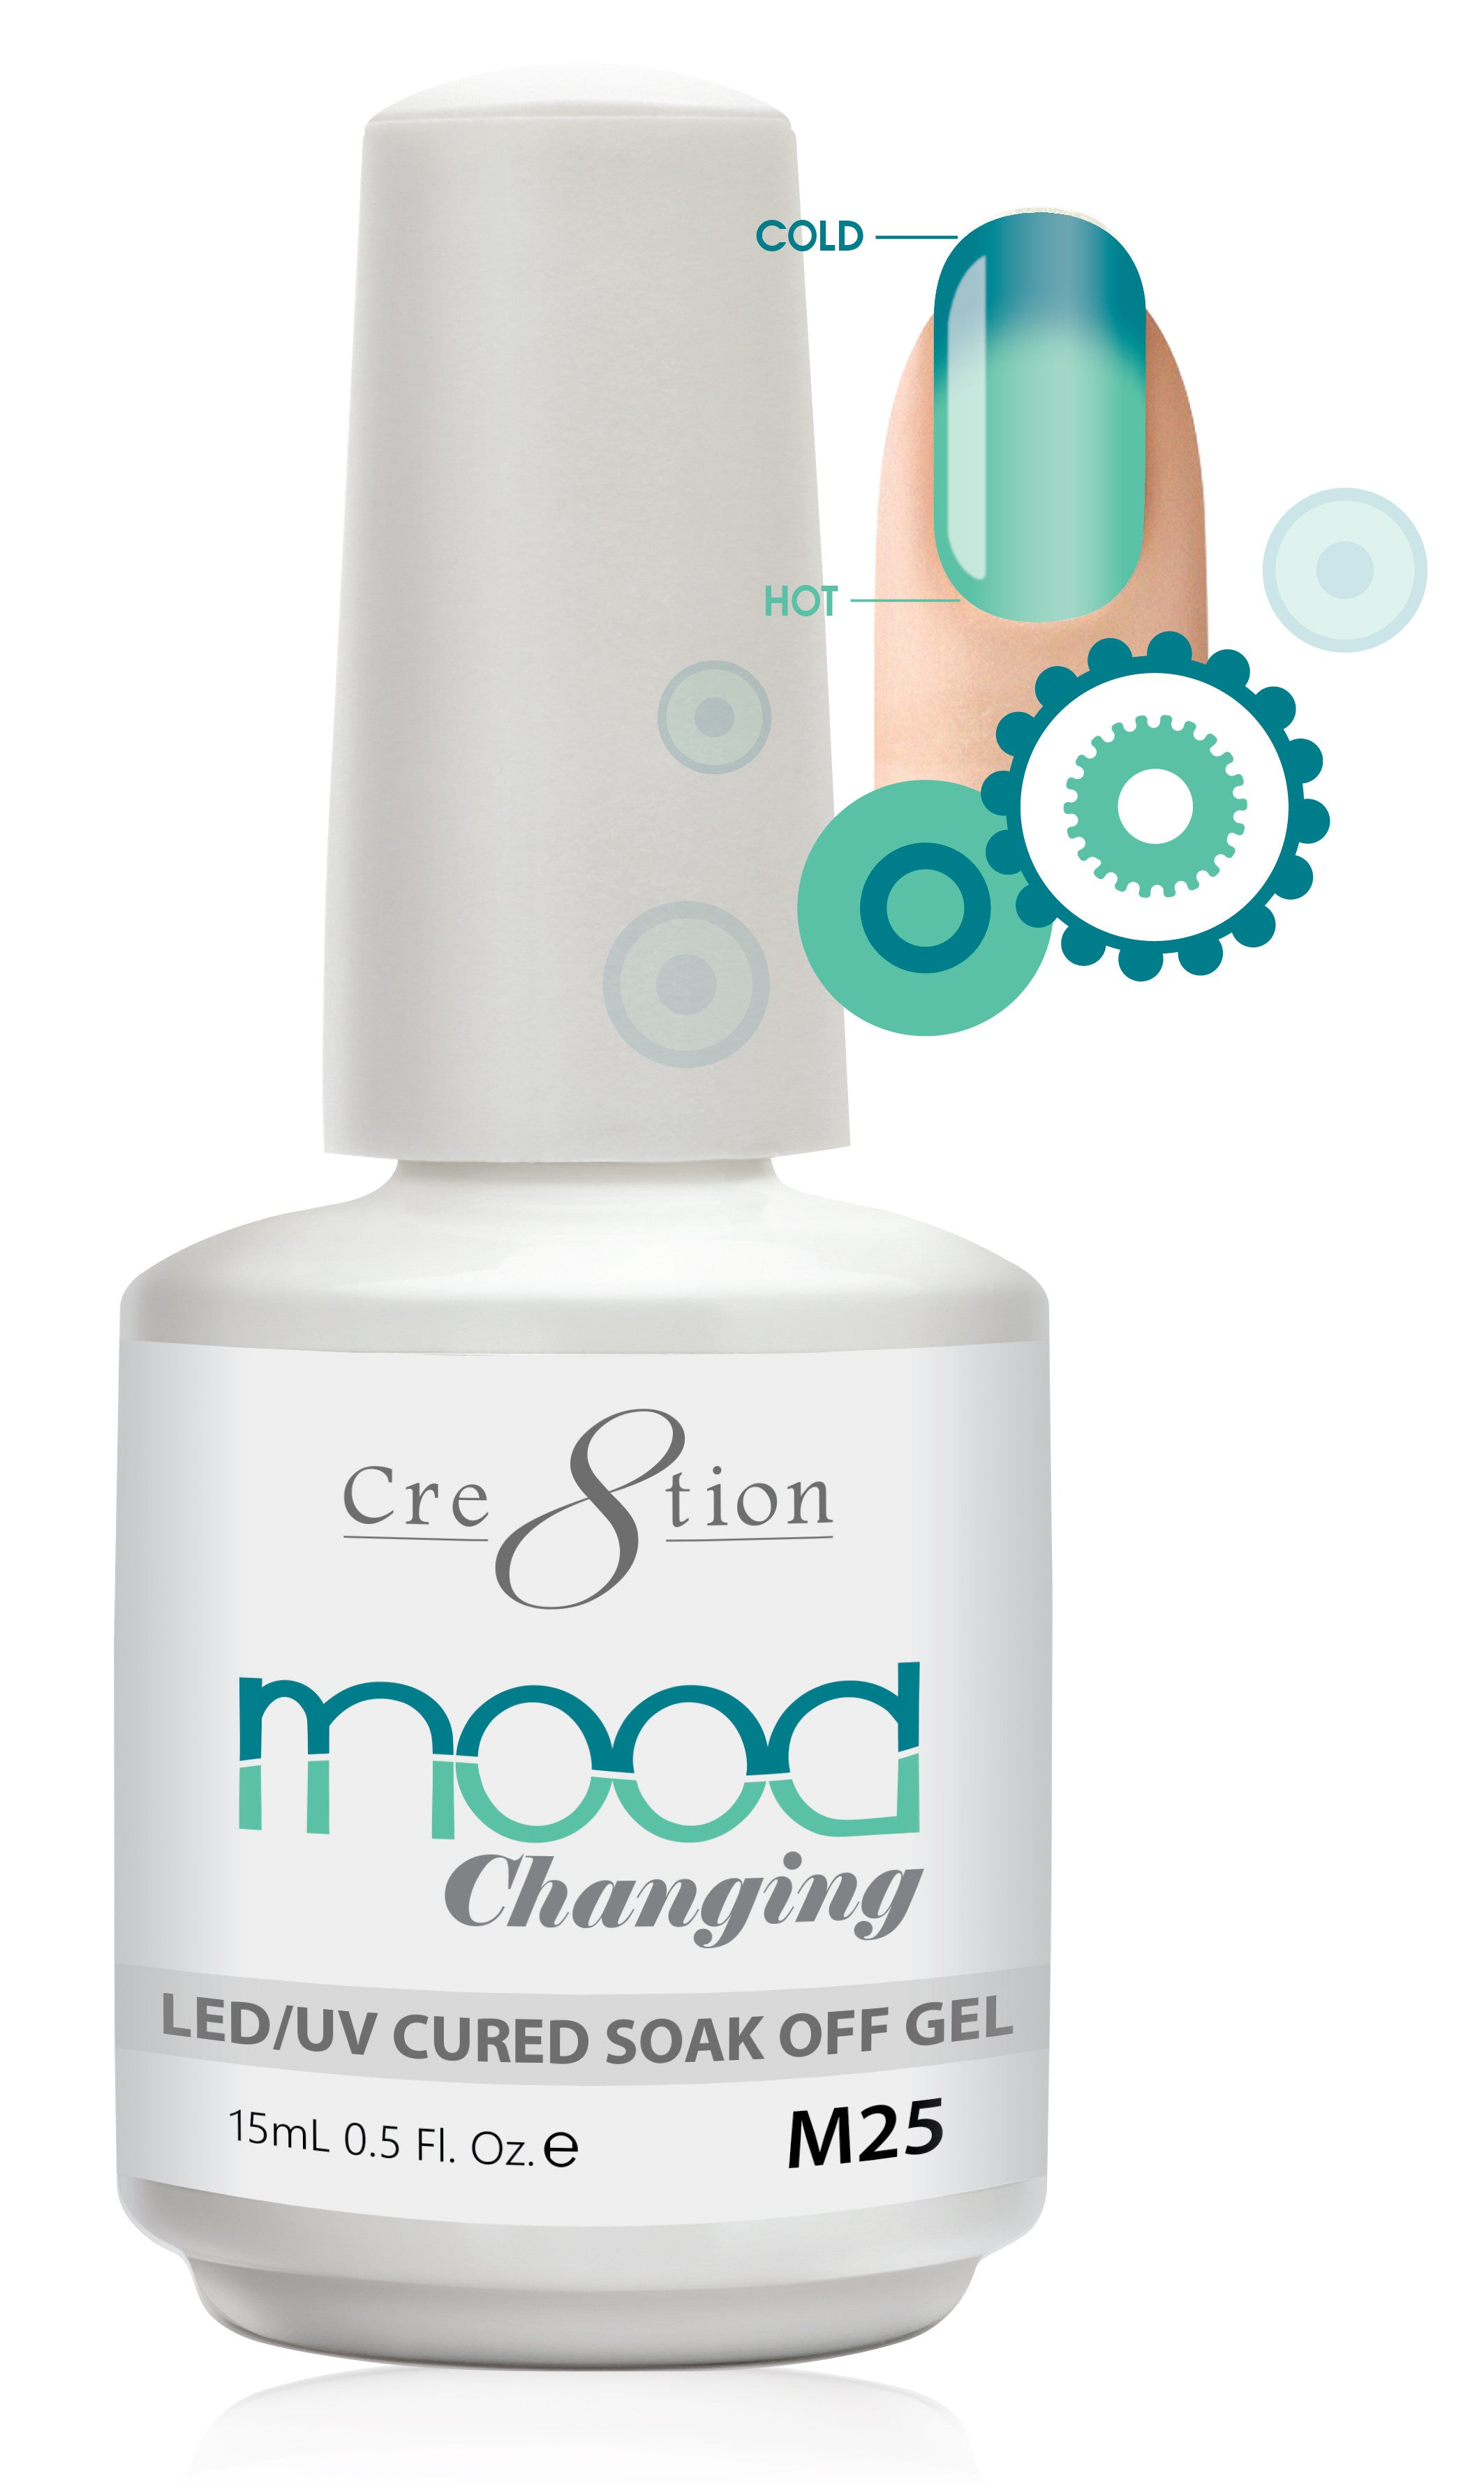 Cre8tion Mood Changing Soak Off Gel M25-Creamy